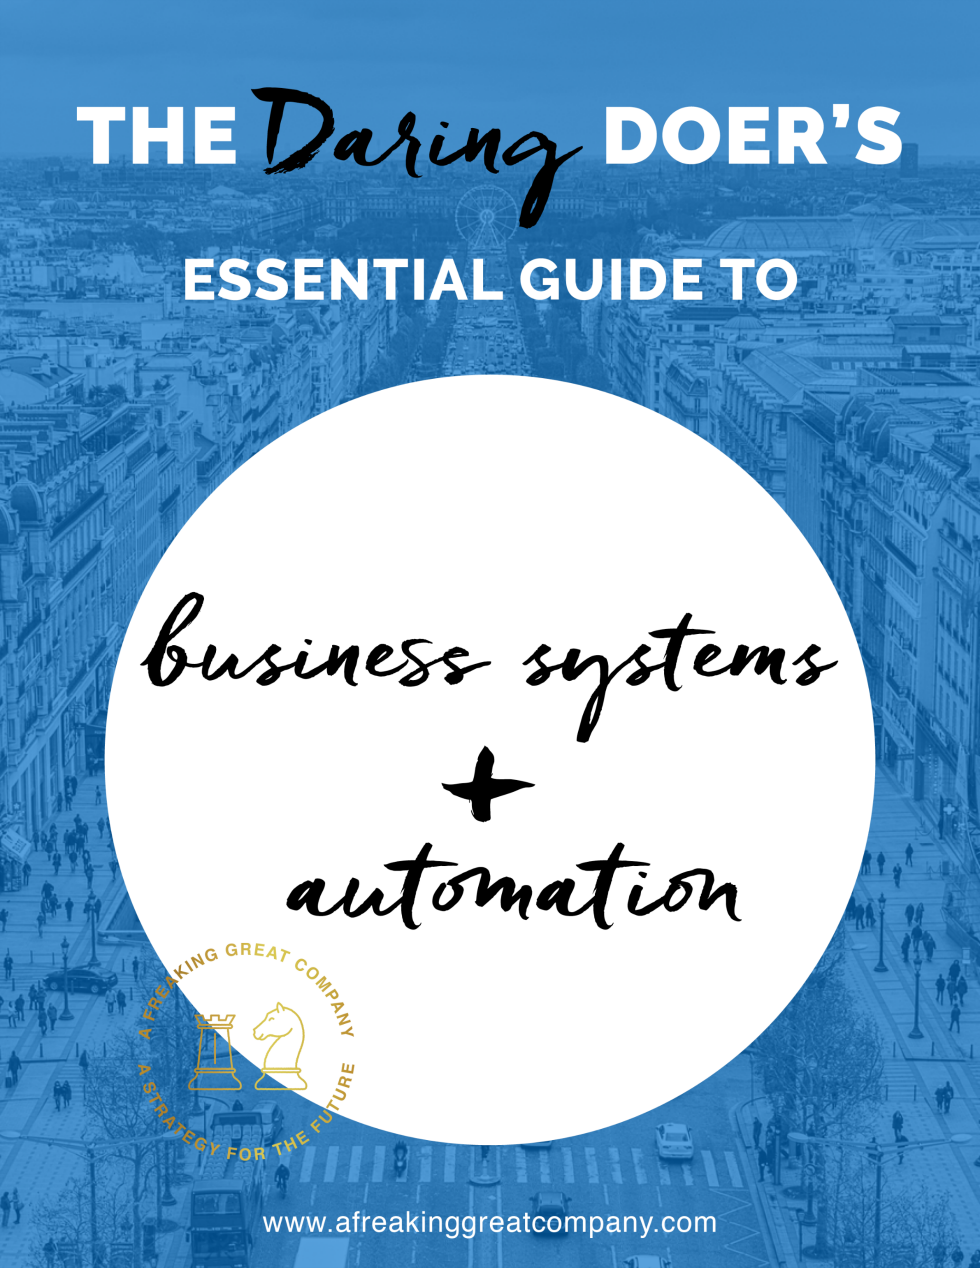 Essential Guide To Business Systems and Automation